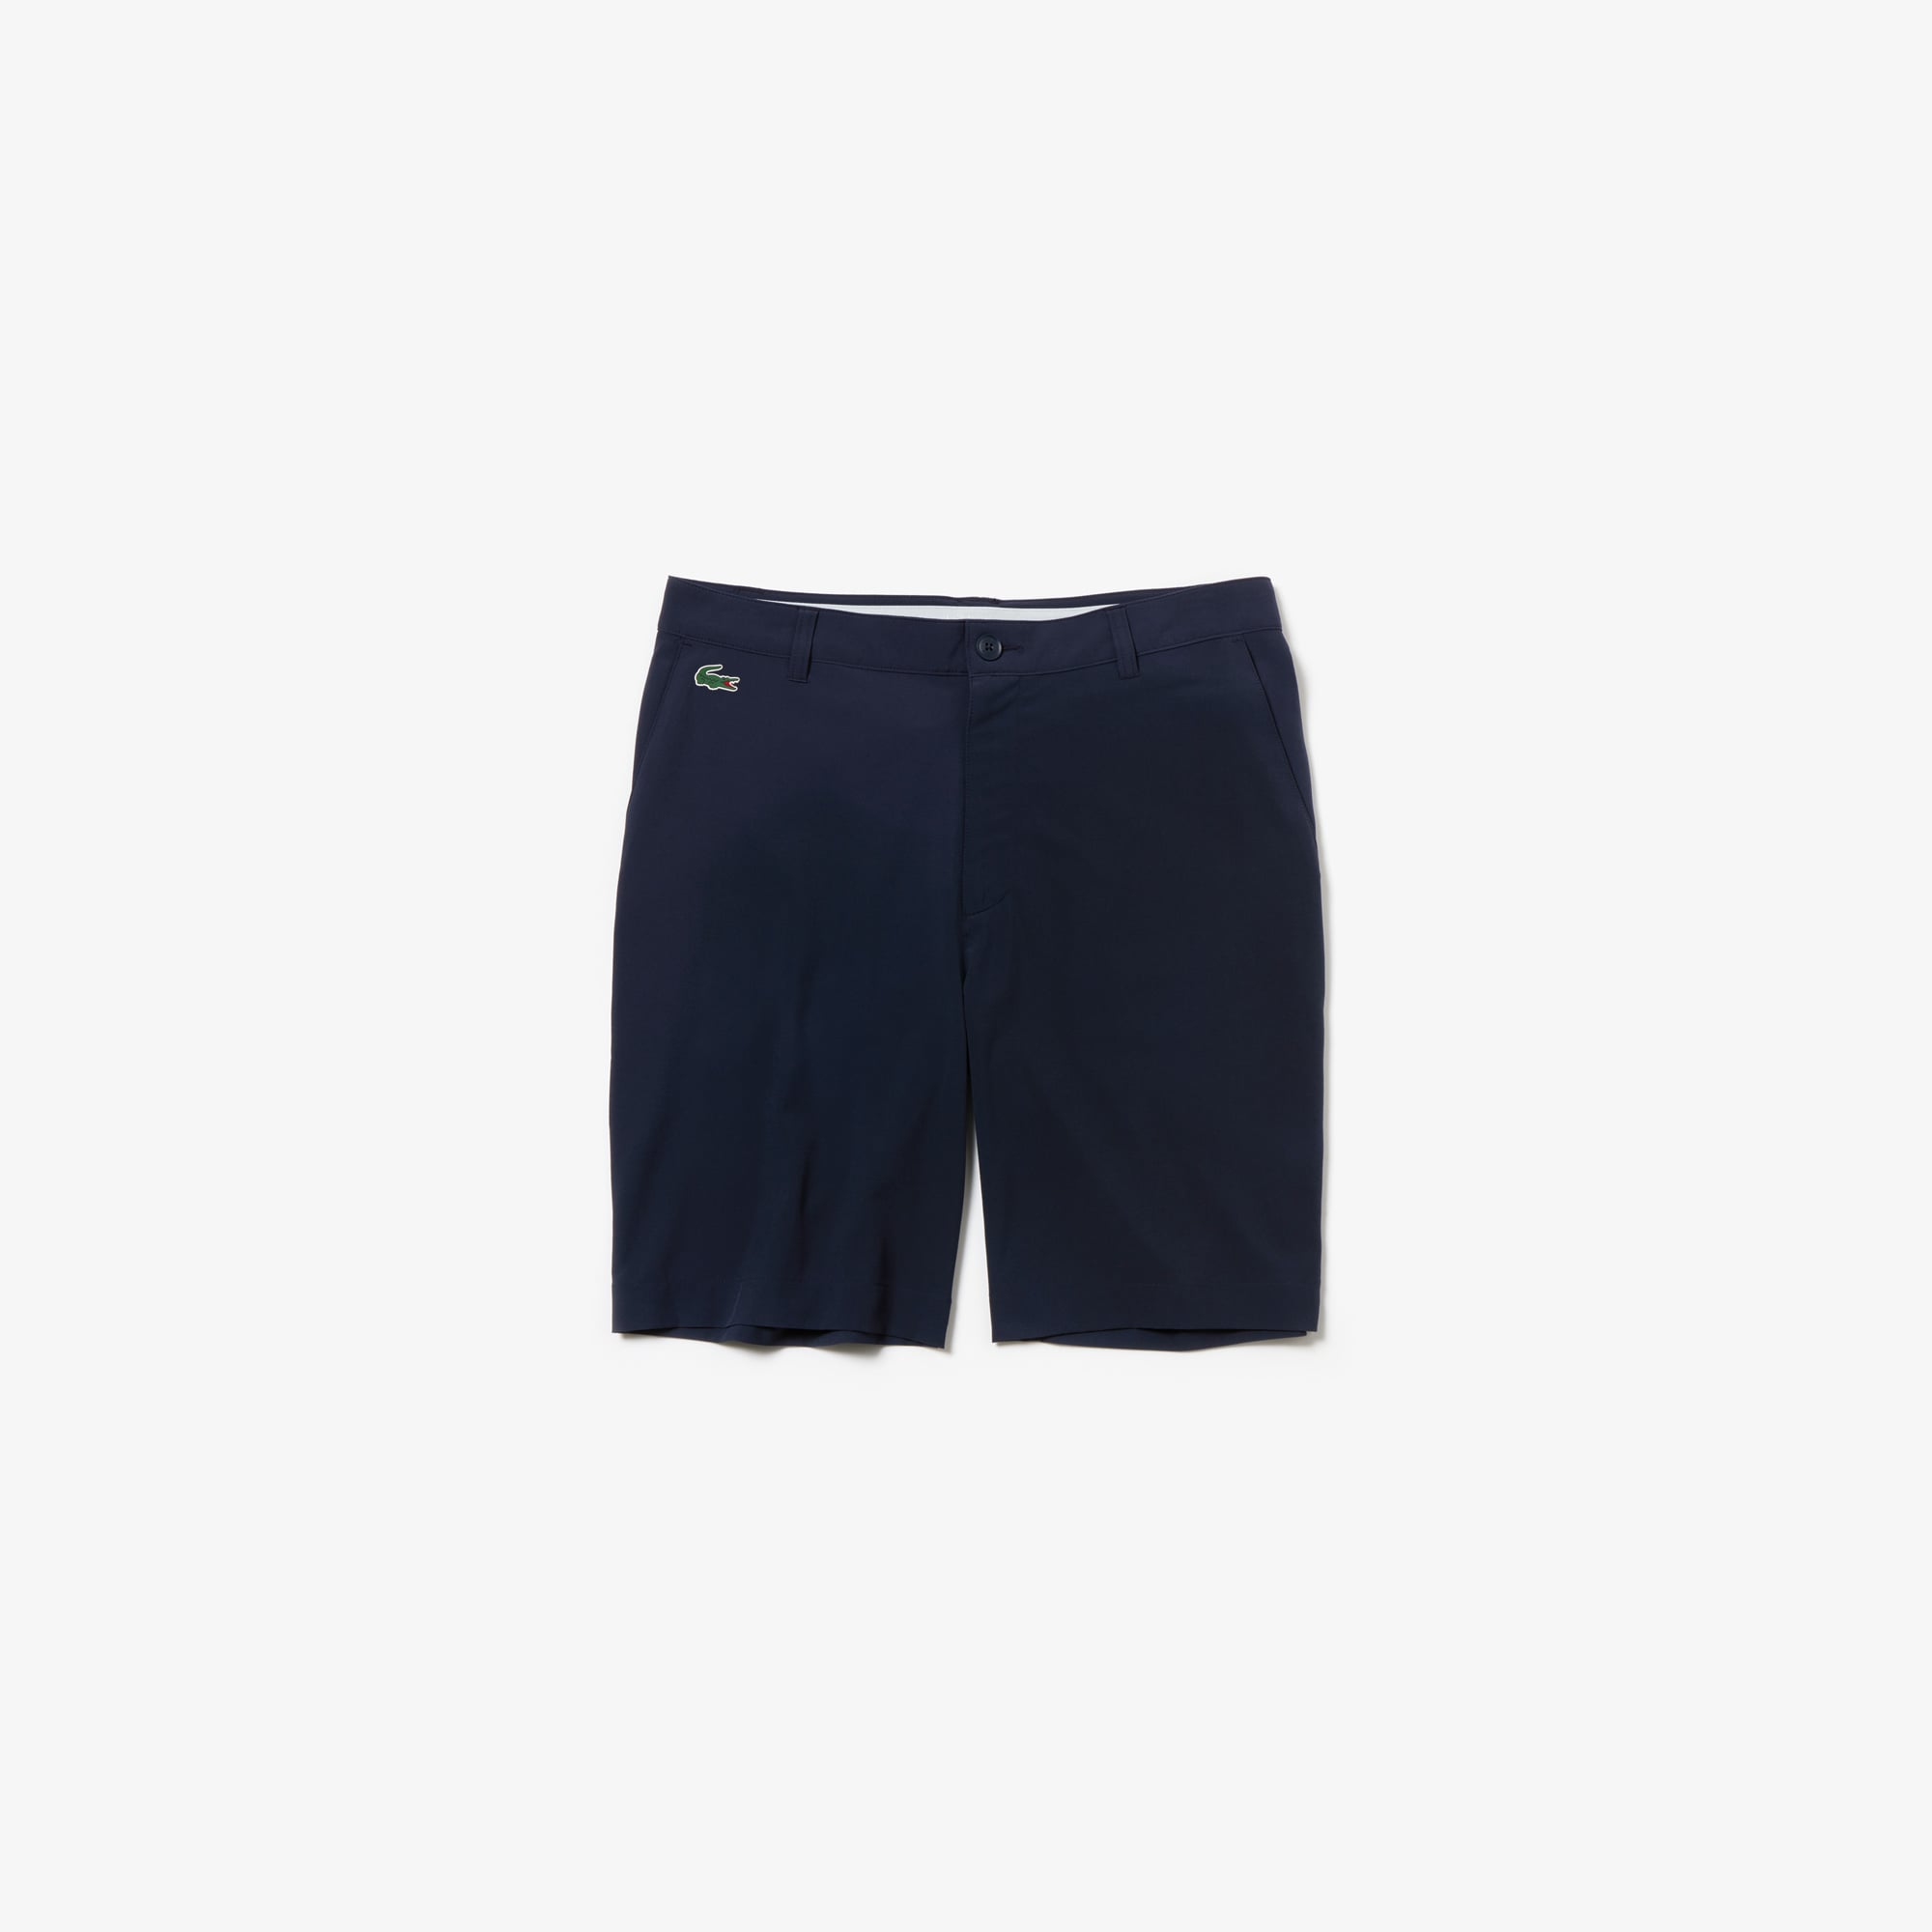 라코스테 Lacoste Mens SPORT Stretch Taffeta Technical Golf Bermuda Shorts,navy blue